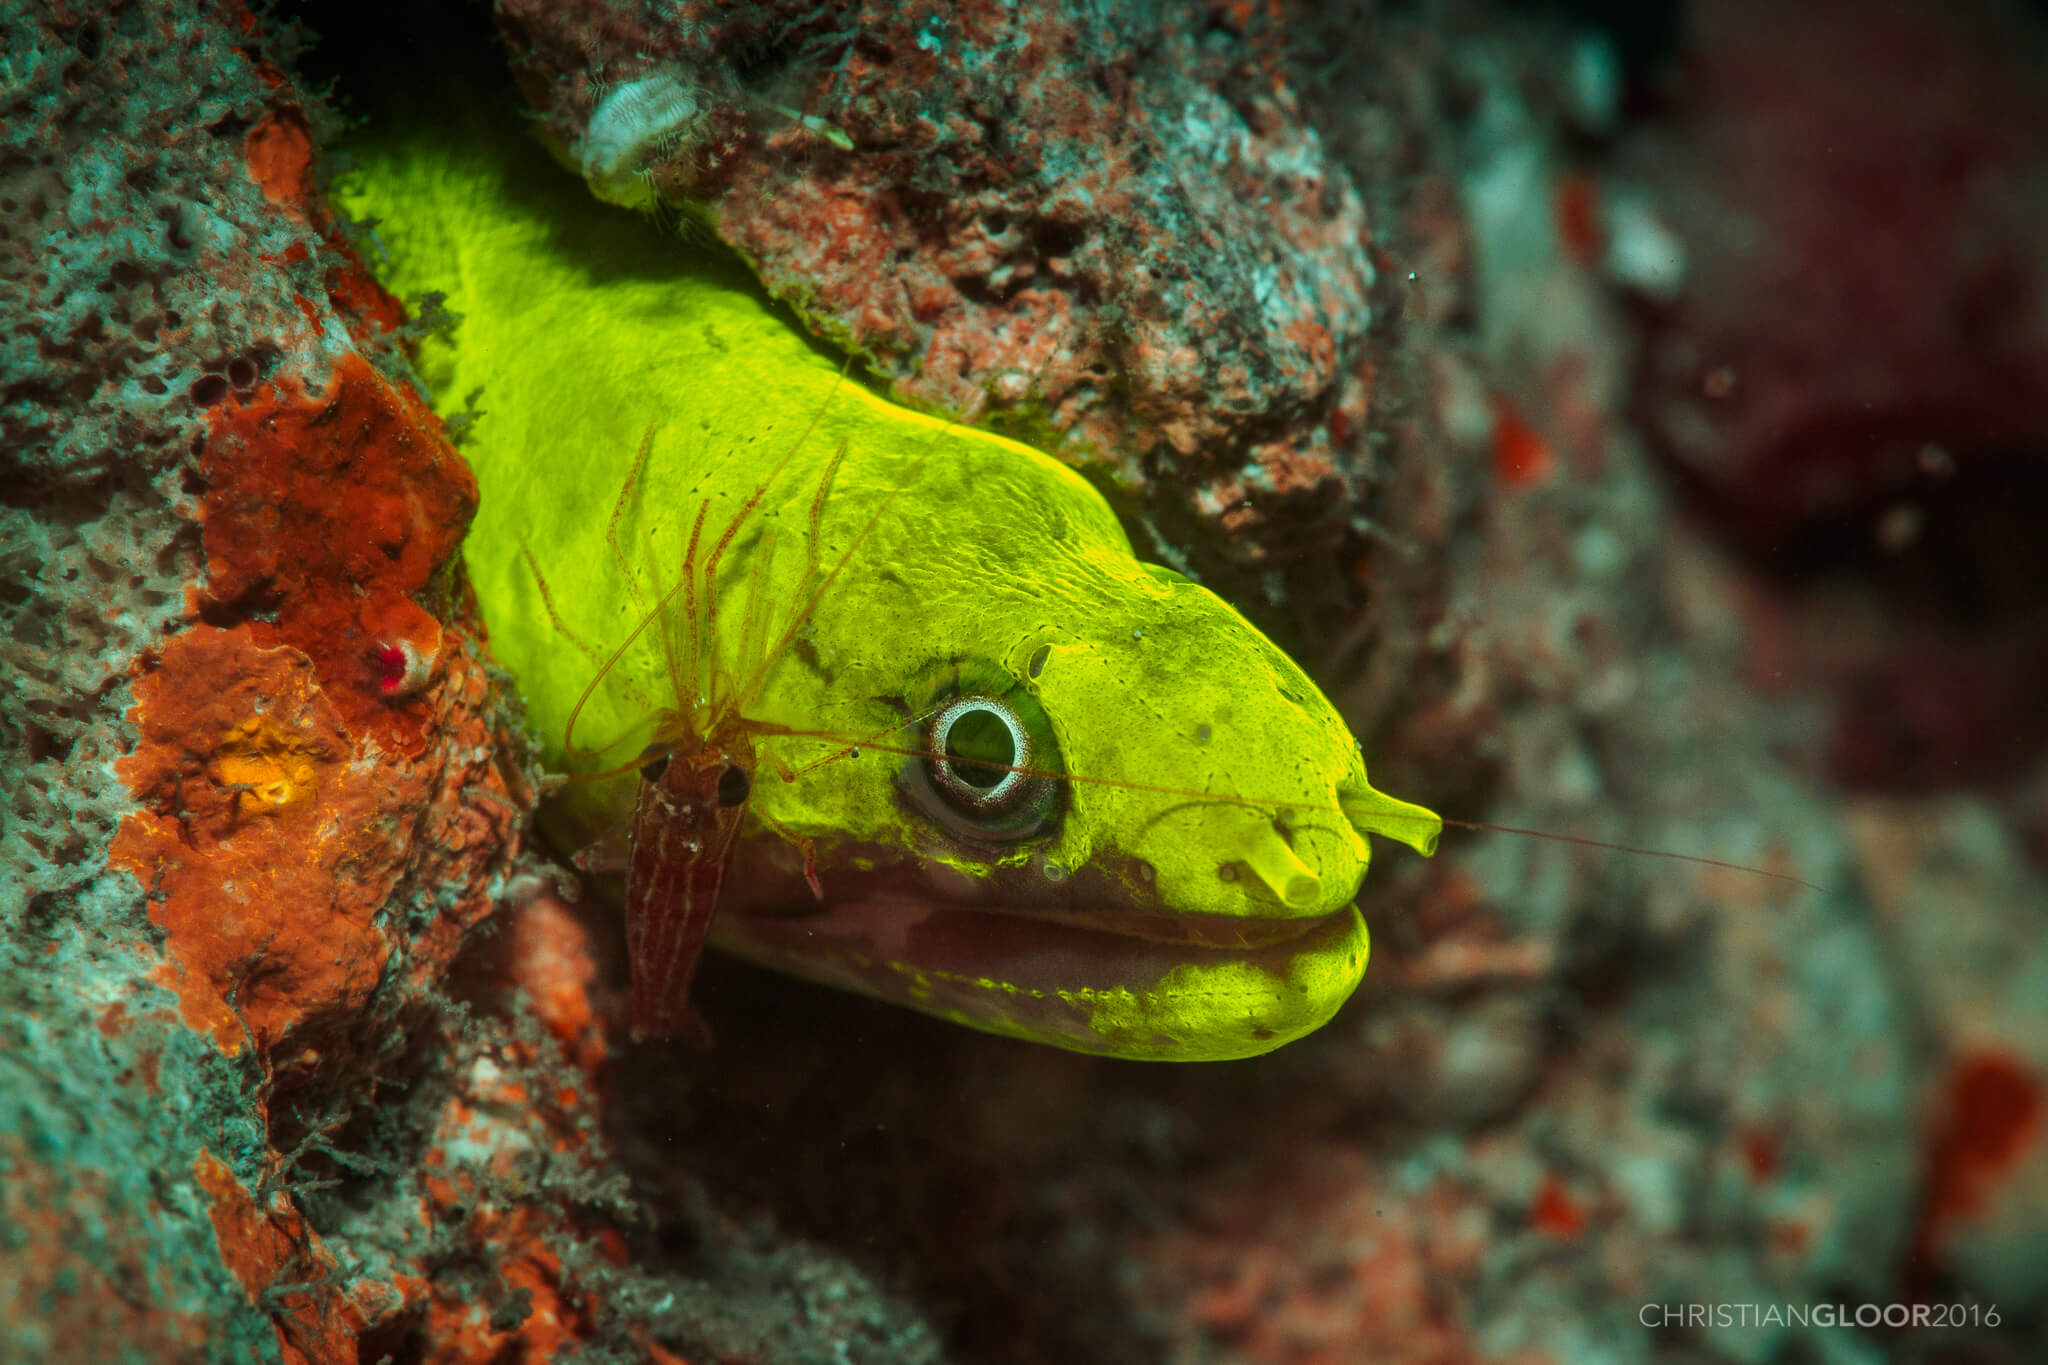 Moray eel on Fluorescent night dive